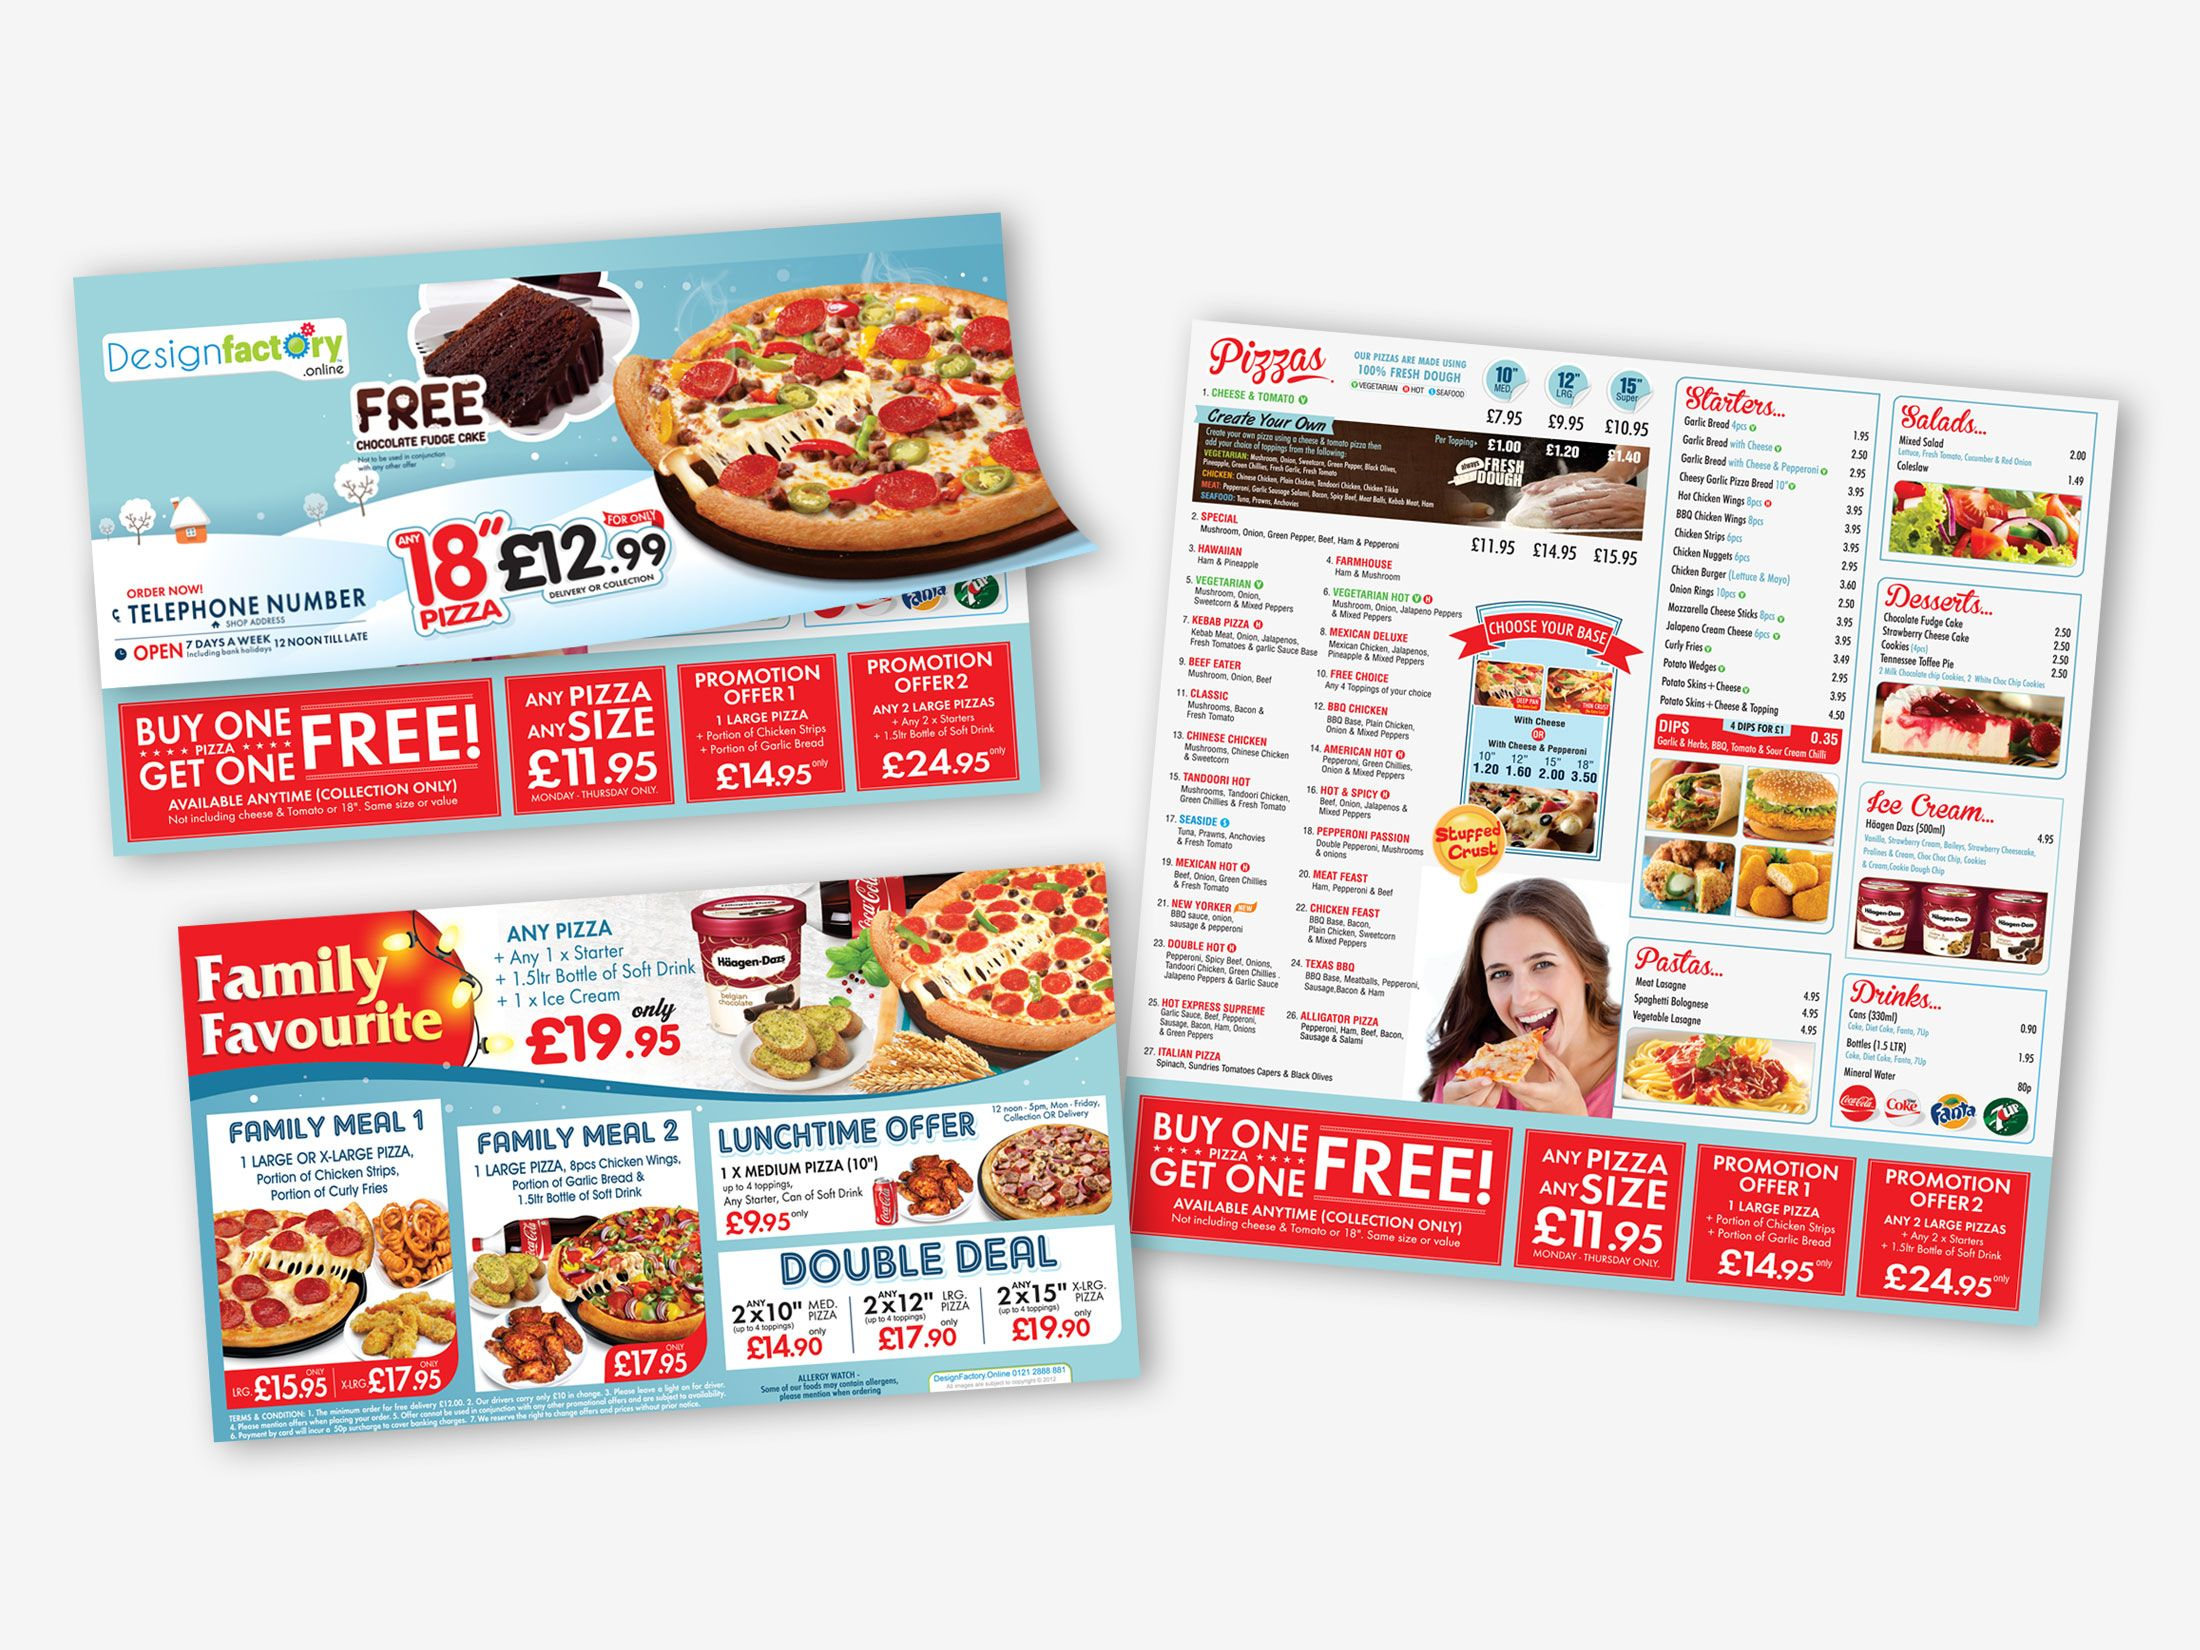 Farm House Pizza Godalming Leaflet Pizza Menu Leaflets